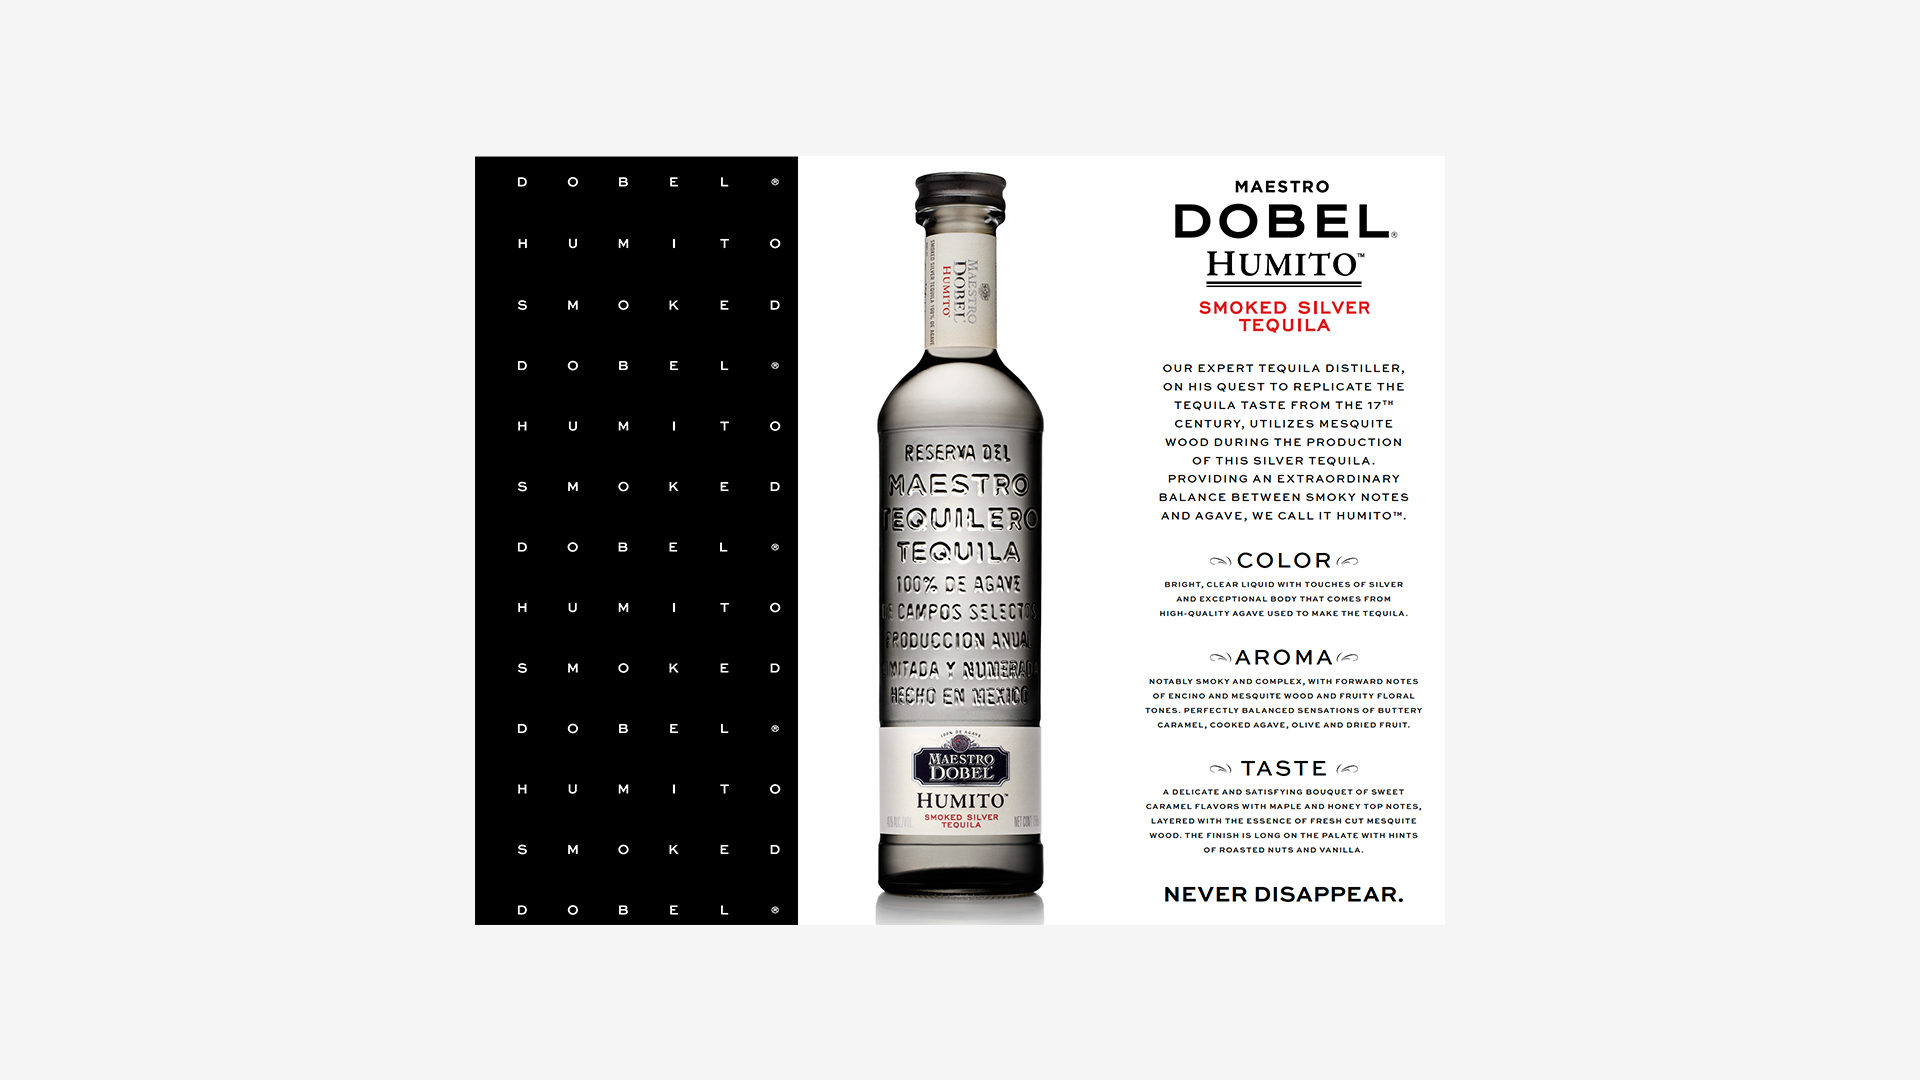 Dobel - Humito Book